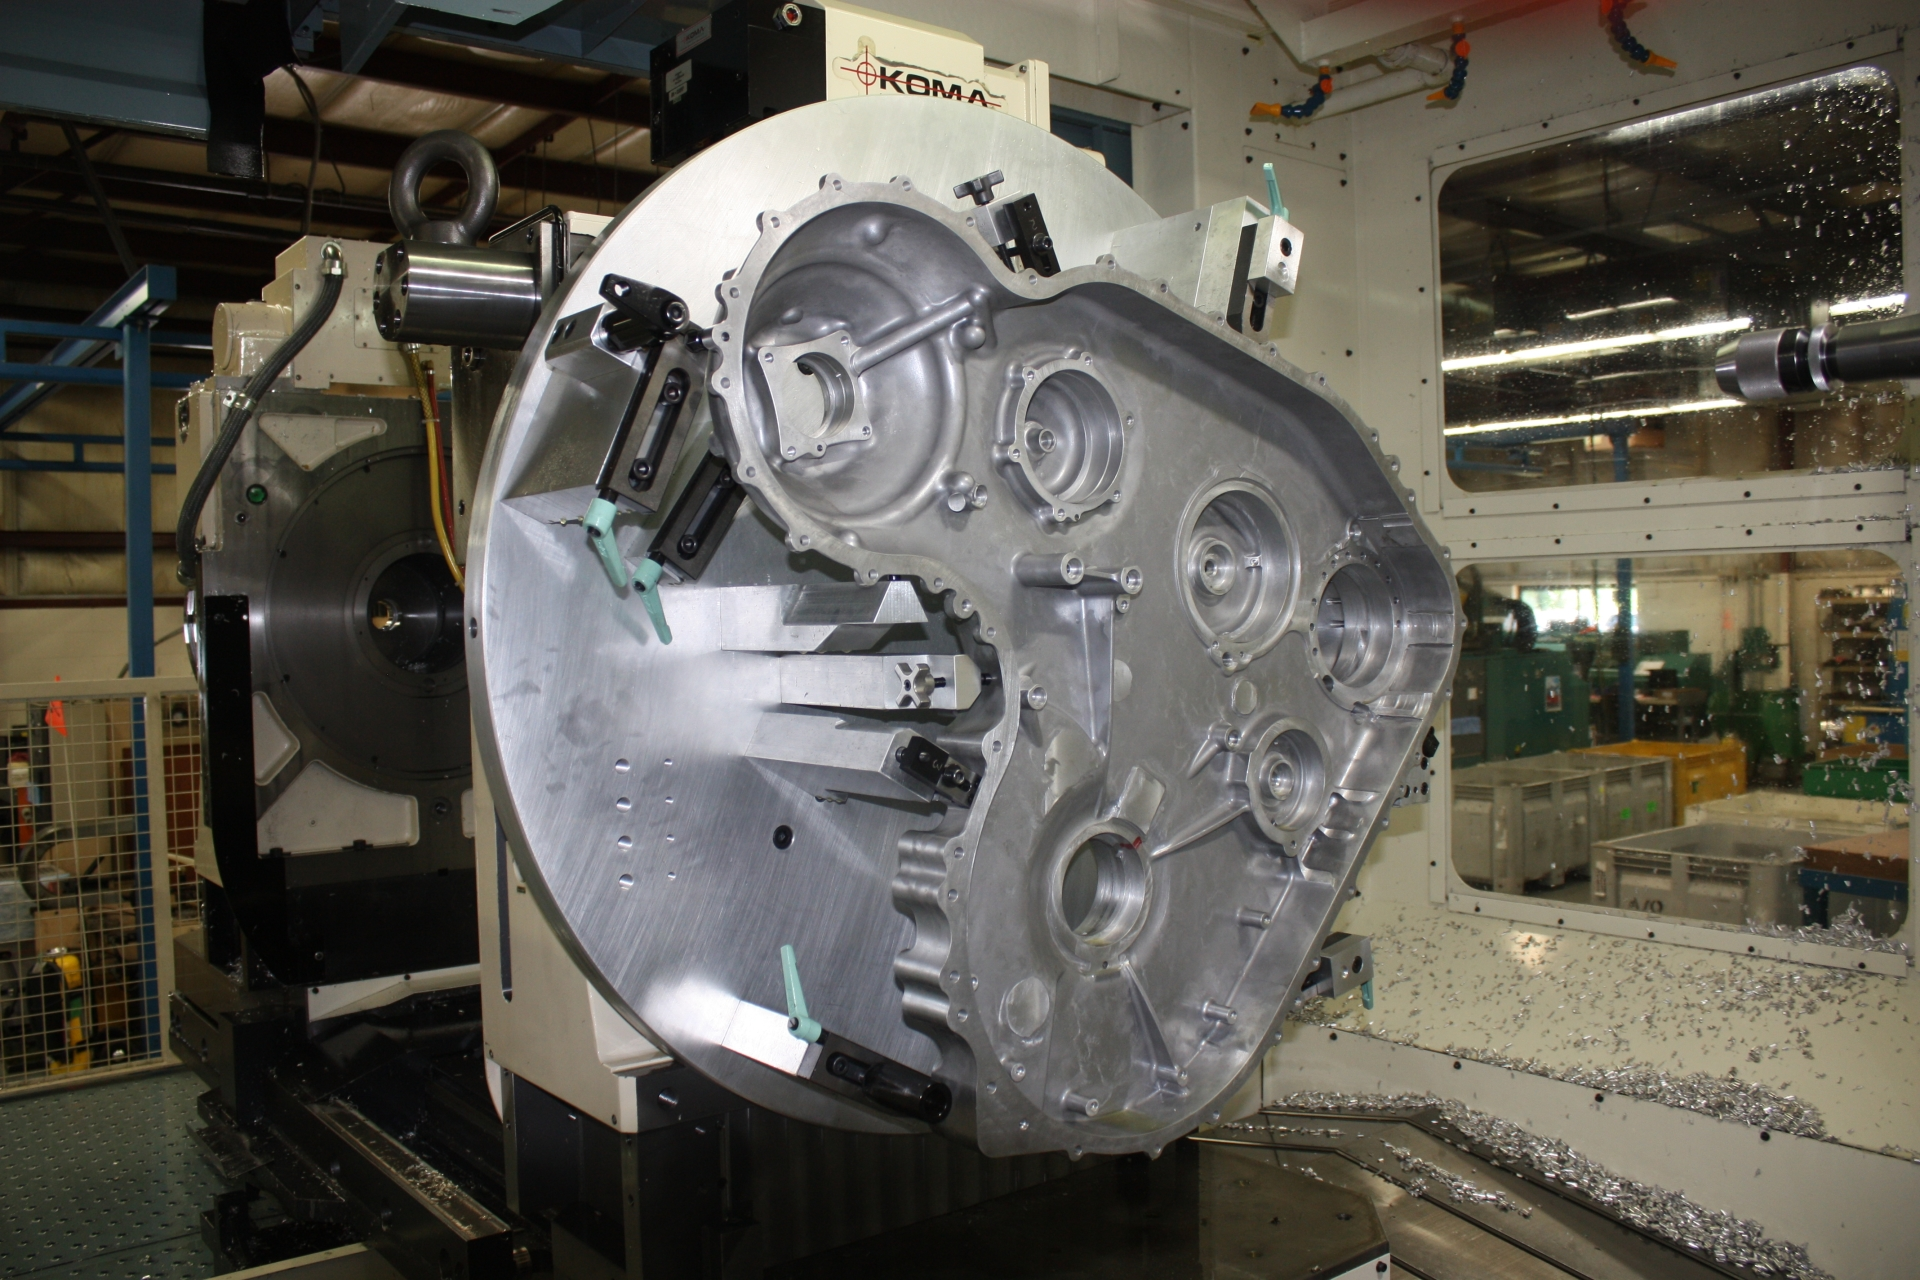 5-Axis Milling